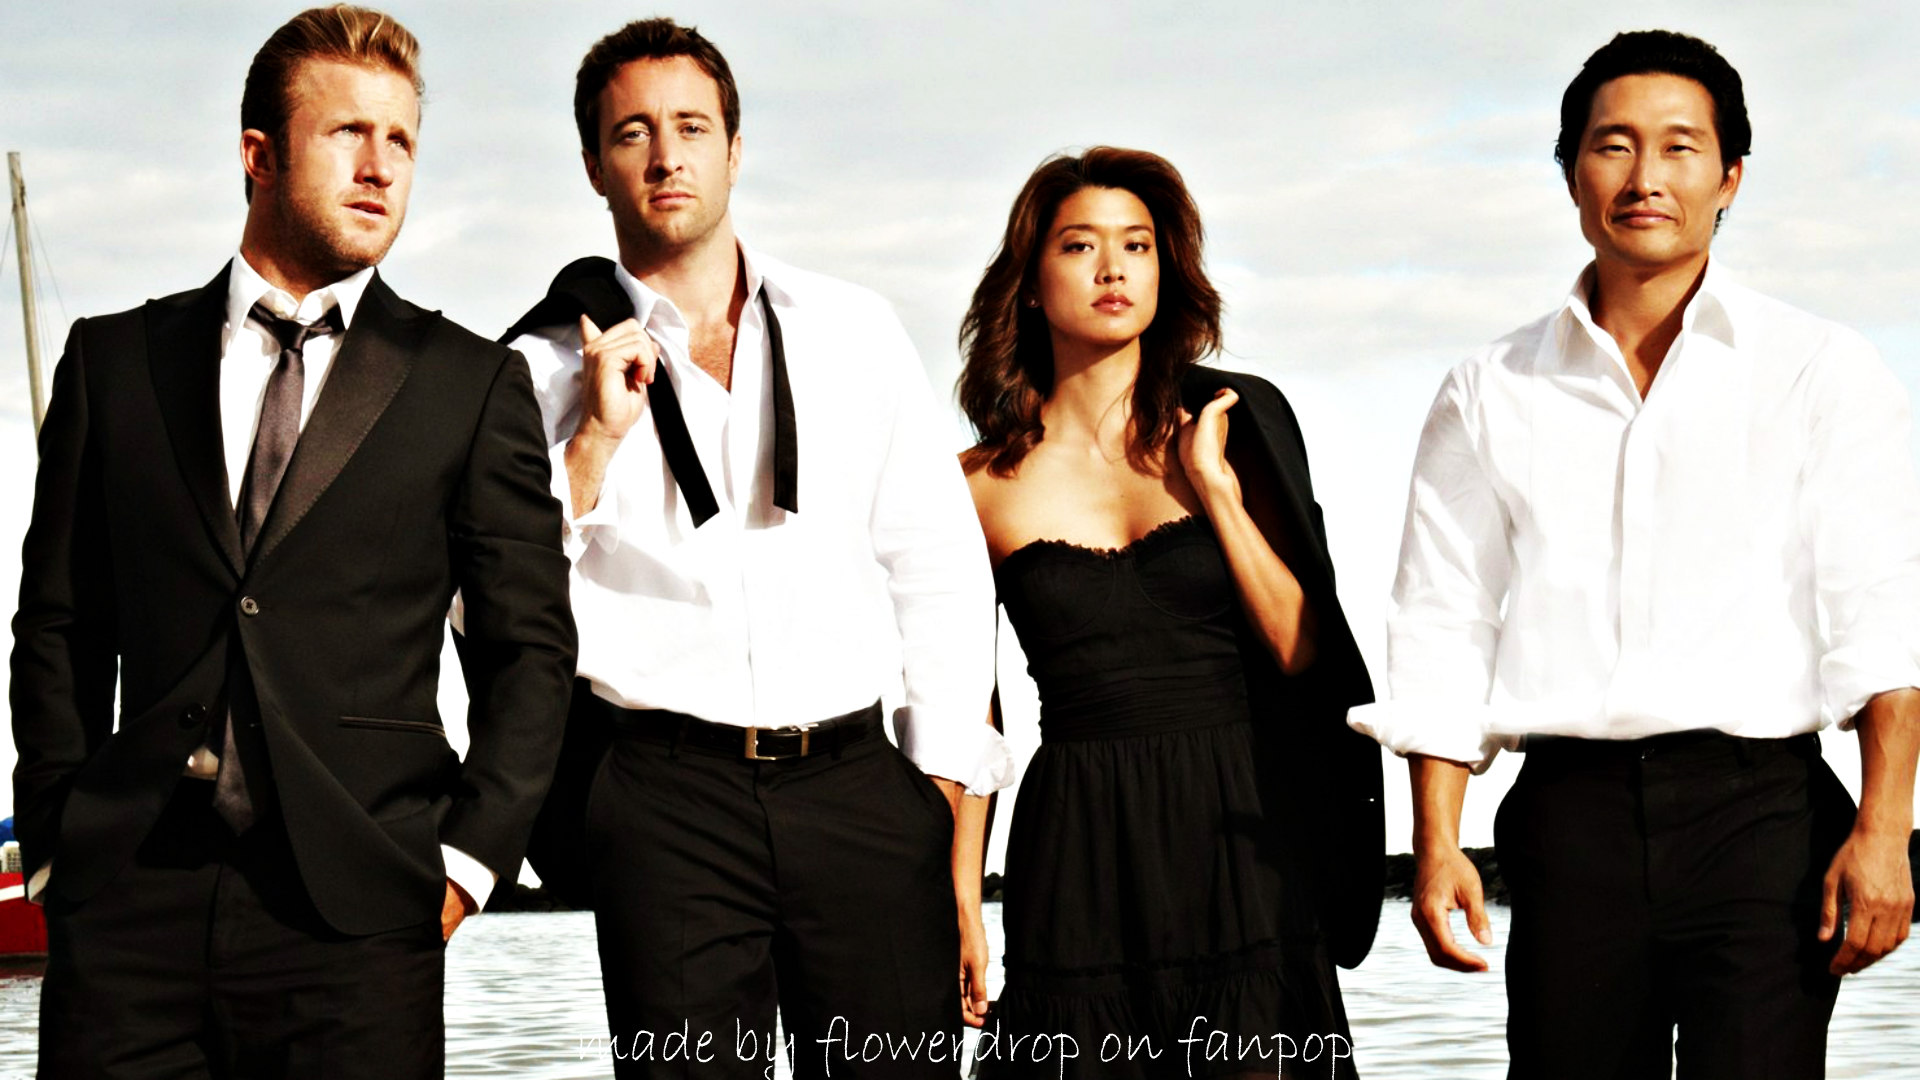 Hawaii Five O Fondo De Pantalla Hawaii Five 0 2010 Fondo